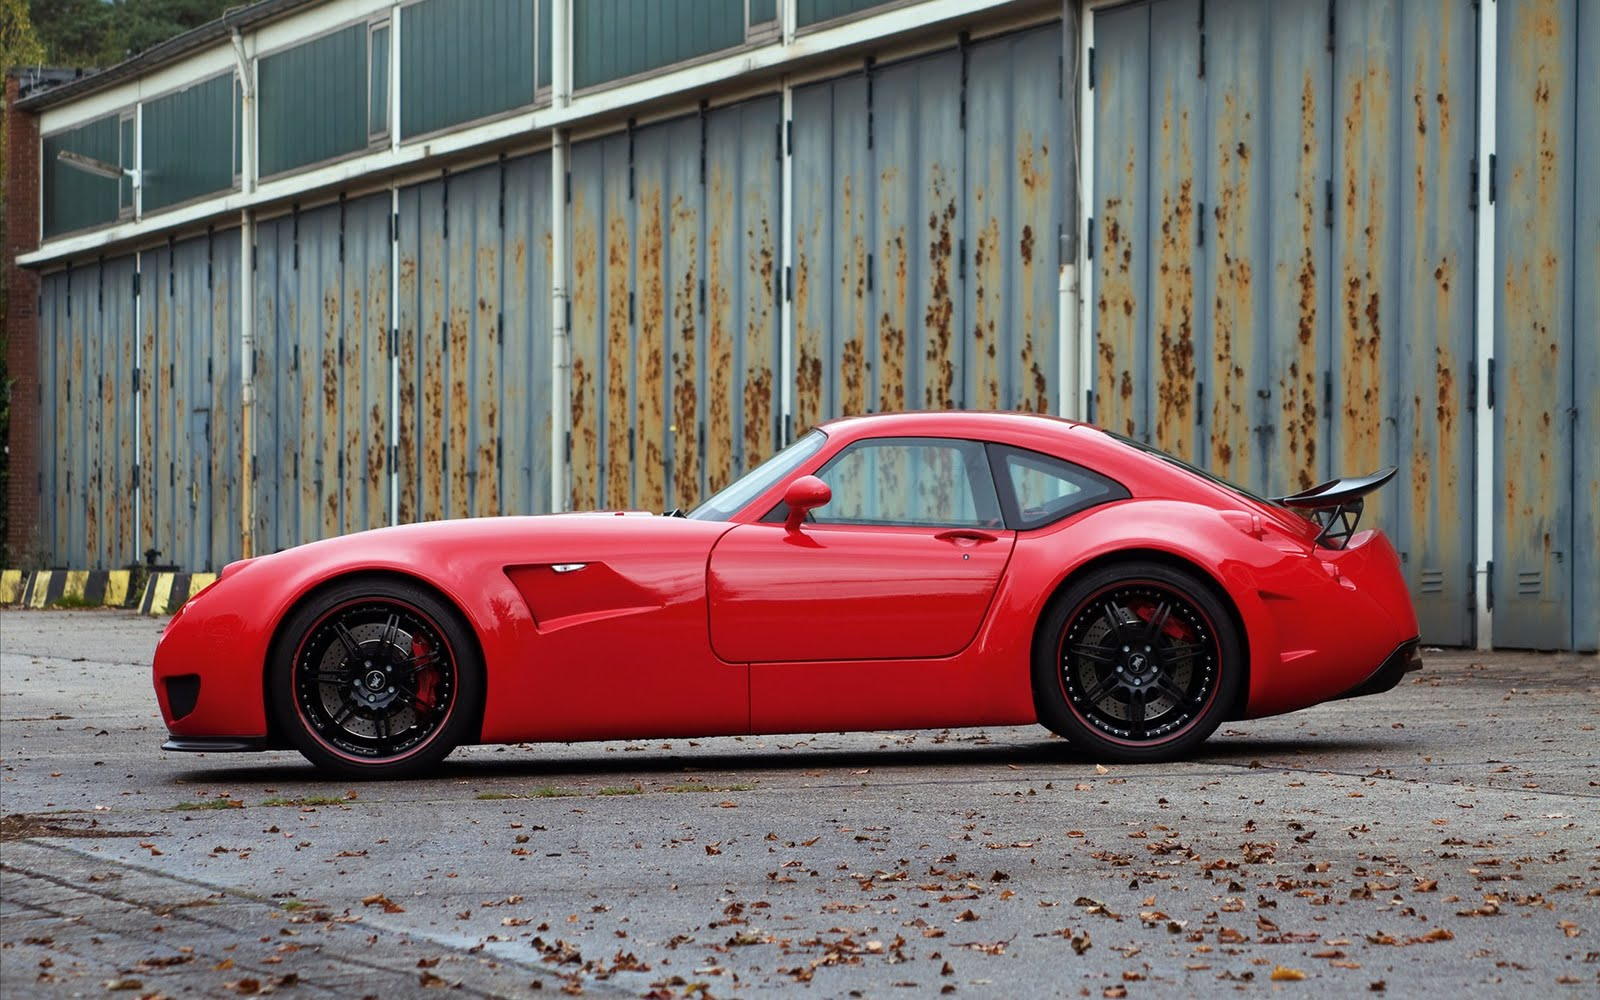 wiesmann gt mf5 2011 review and spec car wallpaper car pictures. Black Bedroom Furniture Sets. Home Design Ideas